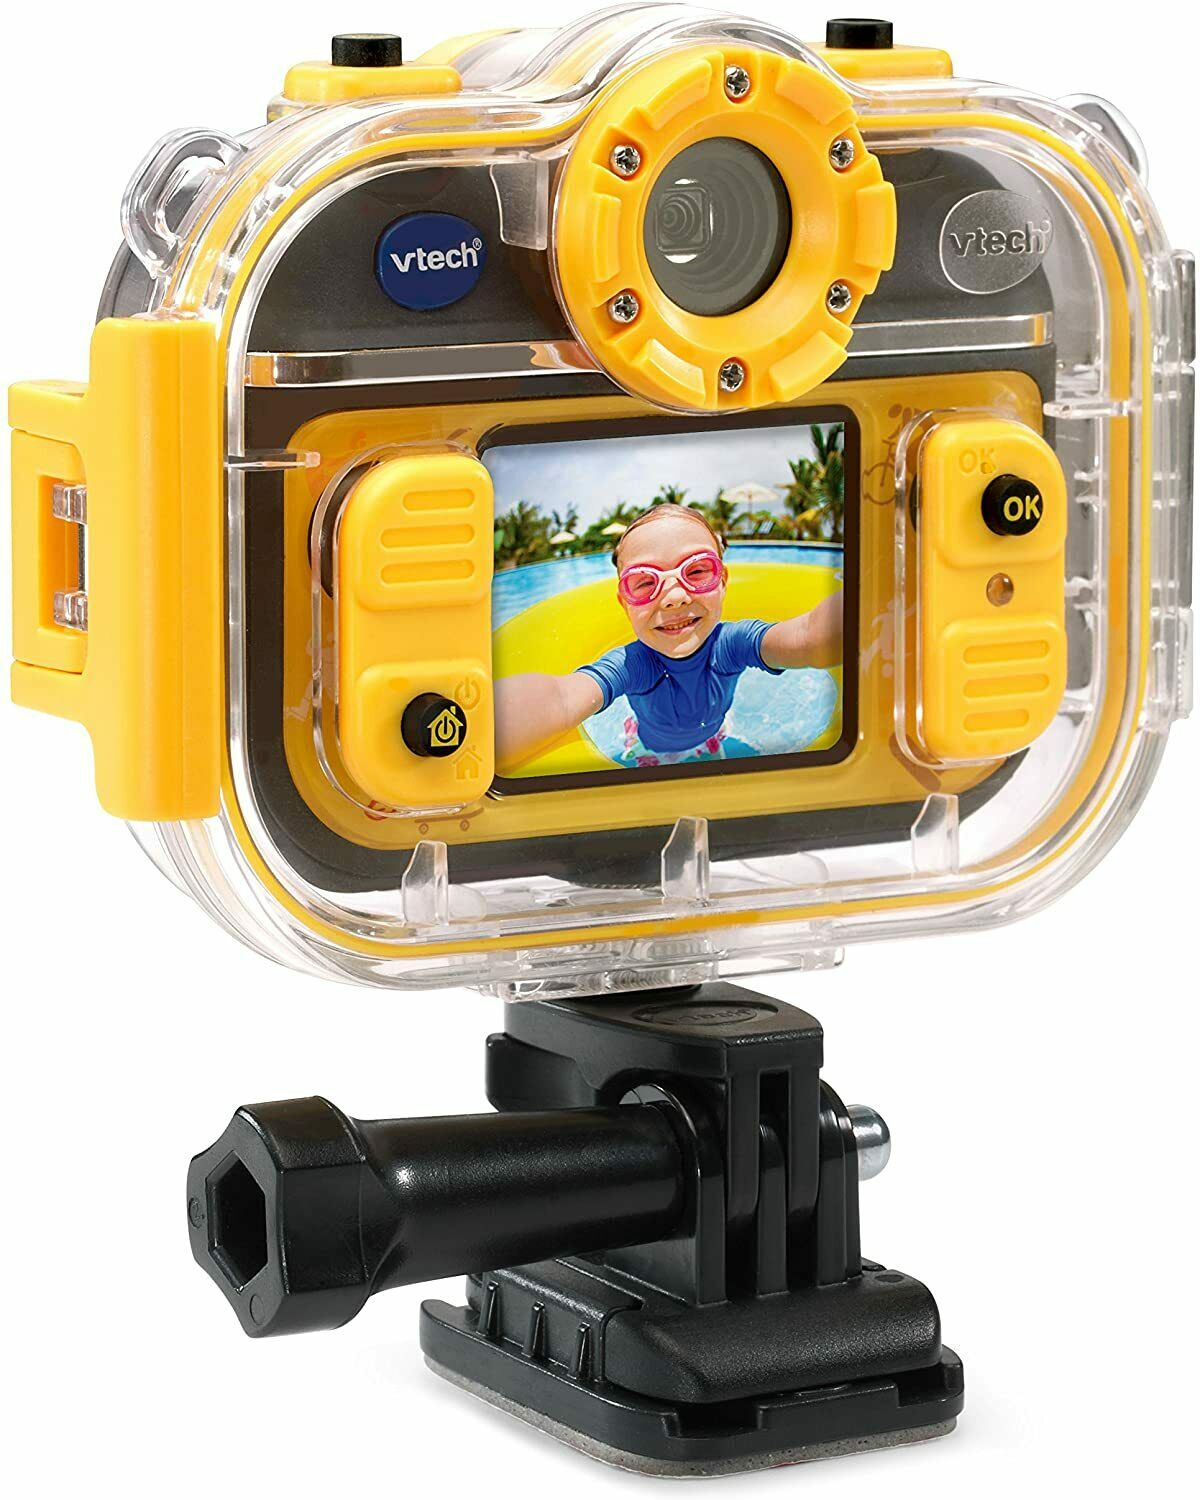 VTech Kidizoom Action Cam 180 [Childrens Action Camera Waterproof microSD] NEW